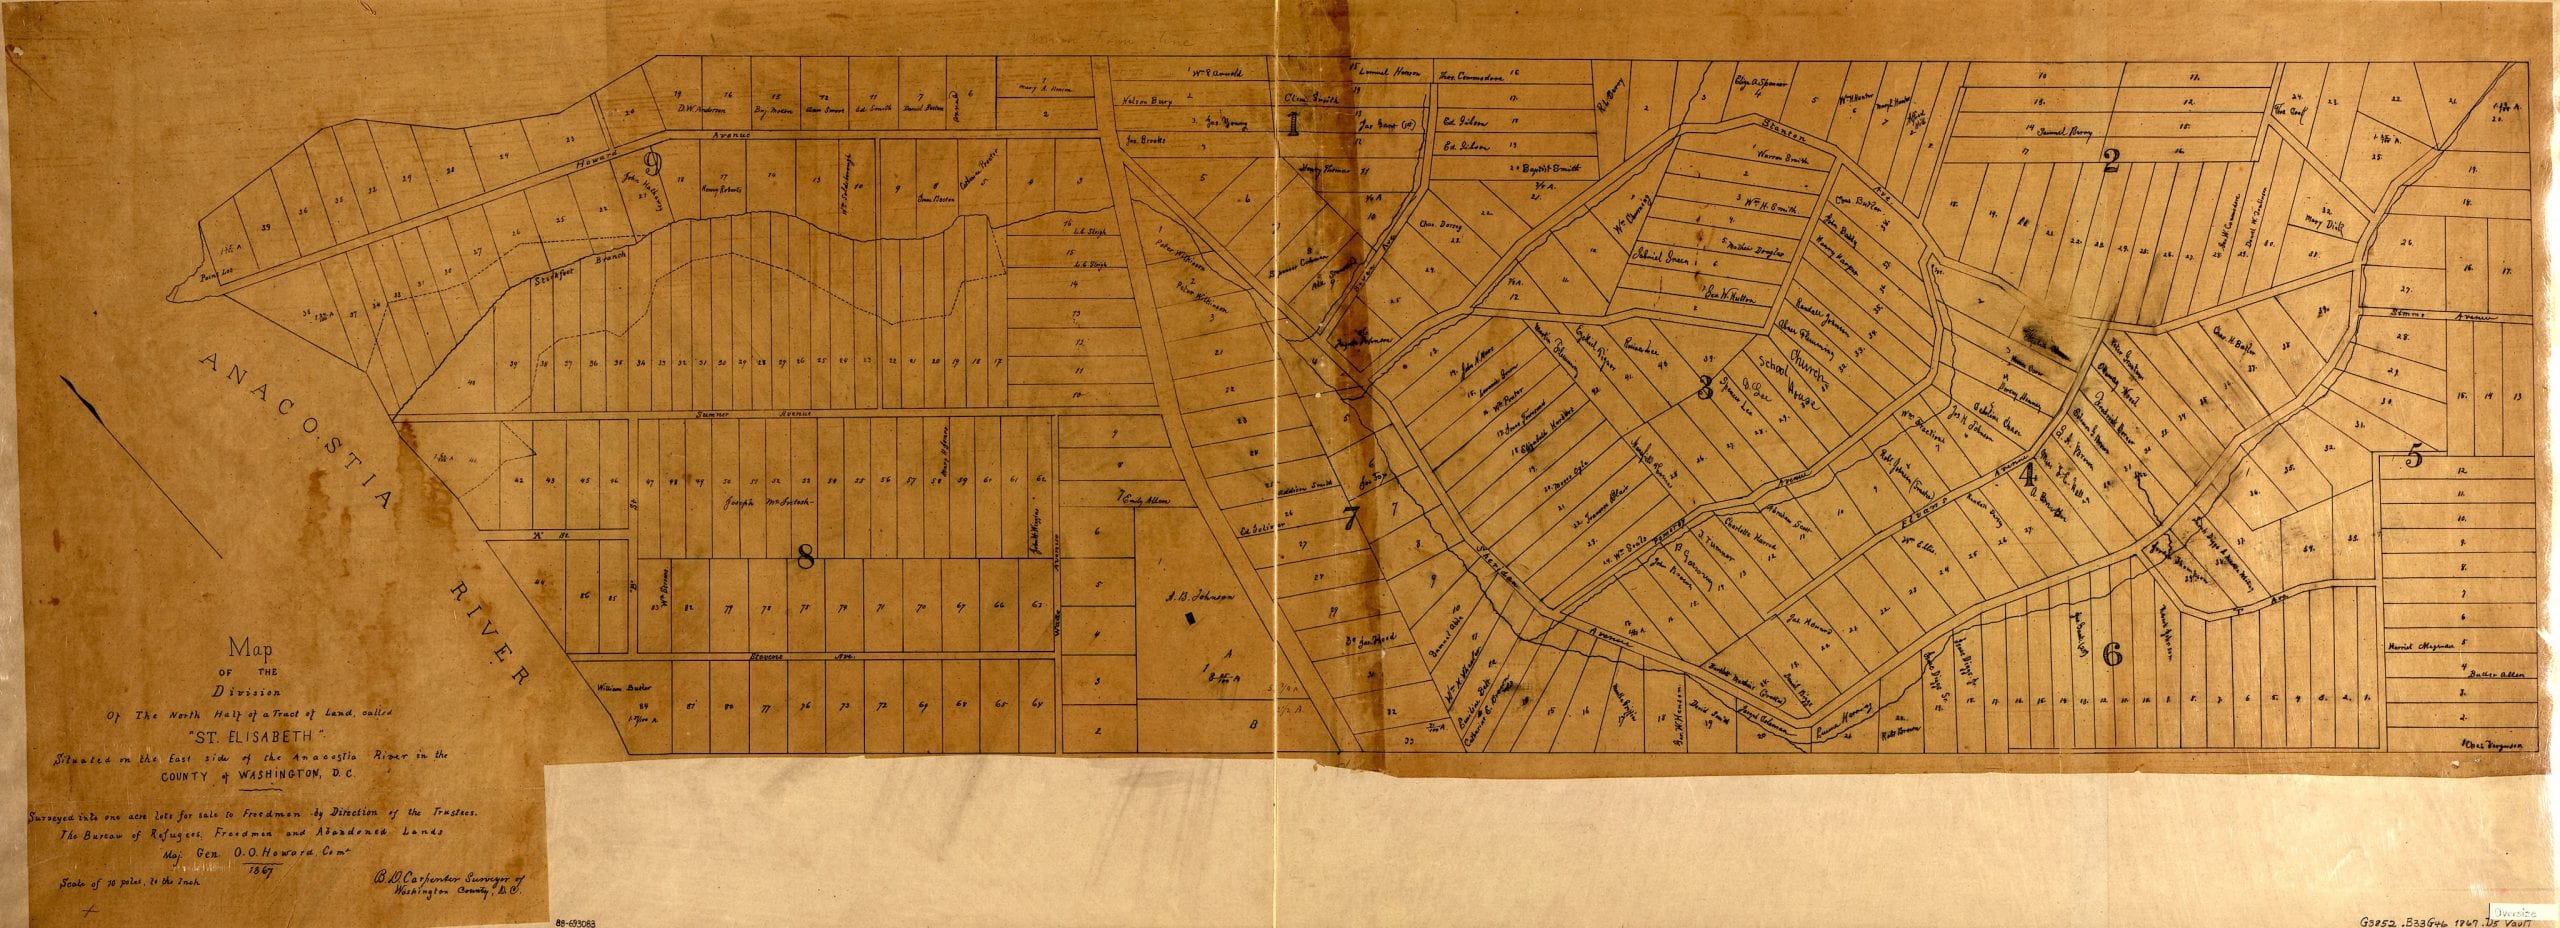 """Map of the division of the north half of a tract of land called """"St. Elisabeth,"""" situated on the east side of the Anacostia River in the county of Washington, D.C. : surveyed into one acre lots for sale to freedmen"""